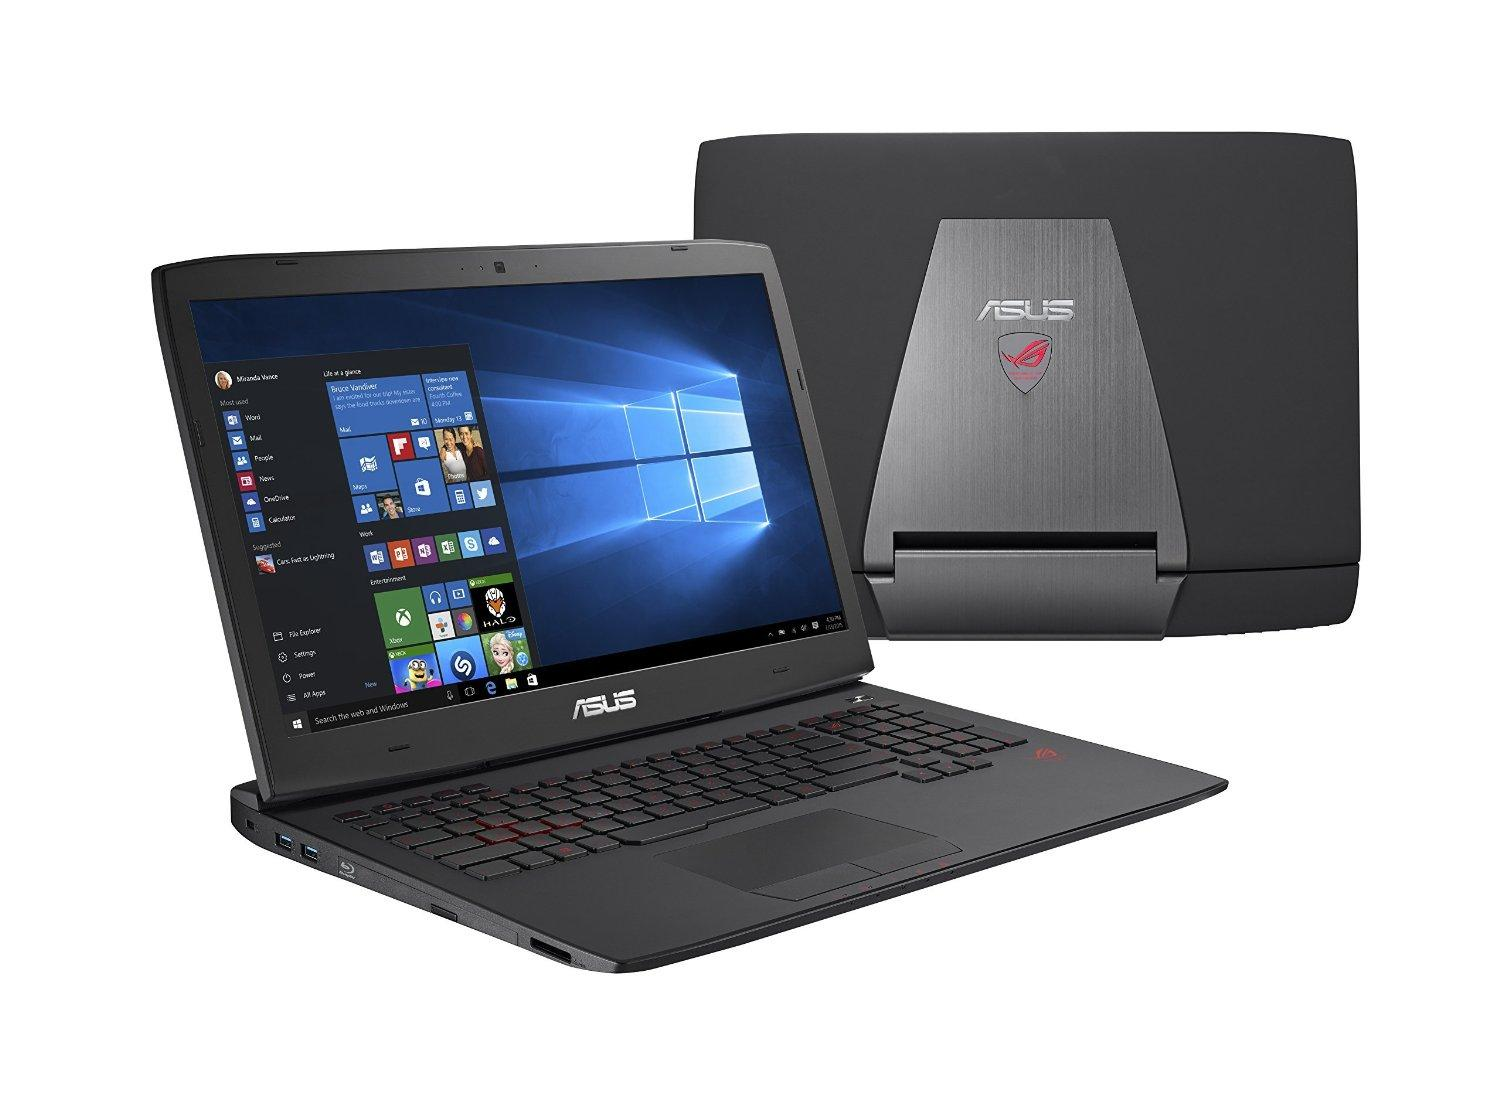 $1599.00 ASUS ROG G751JY-WH71(WX) 17-Inch Gaming Laptop, Nvidia GeForce GTX 980M